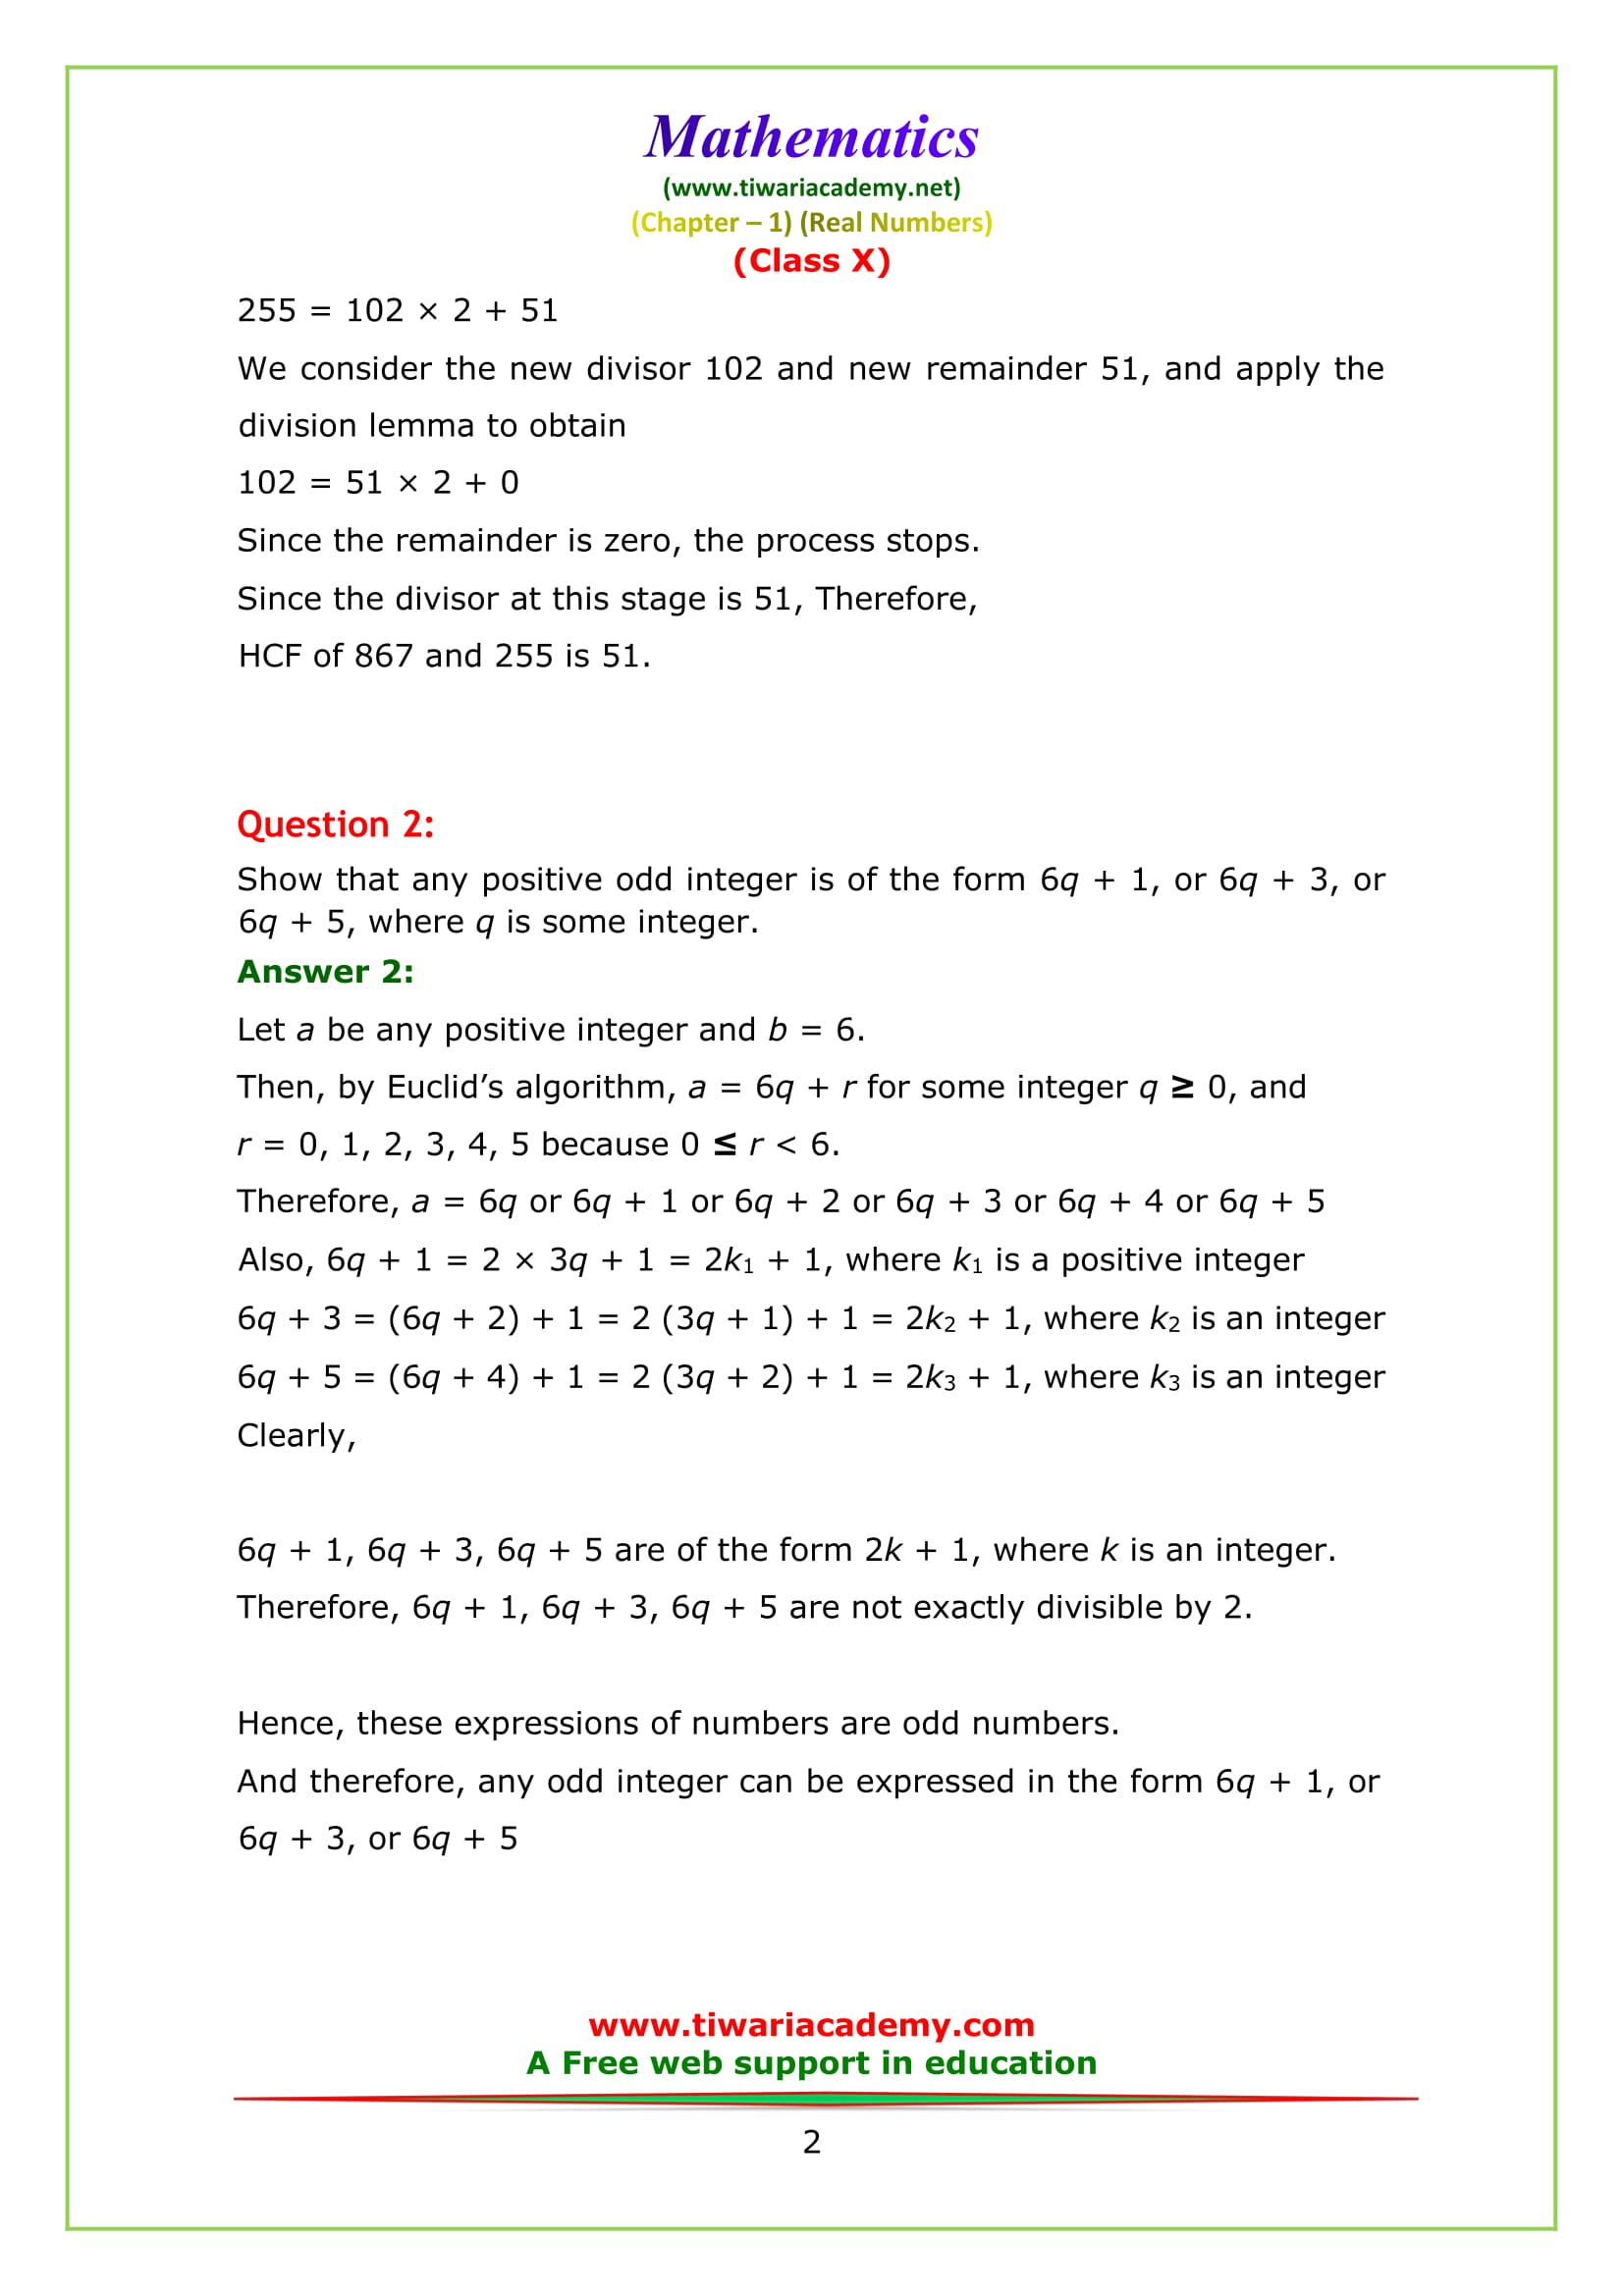 NCERT Solutions for Class 10 Maths Chapter 1 Exercise 1.1 Question 2